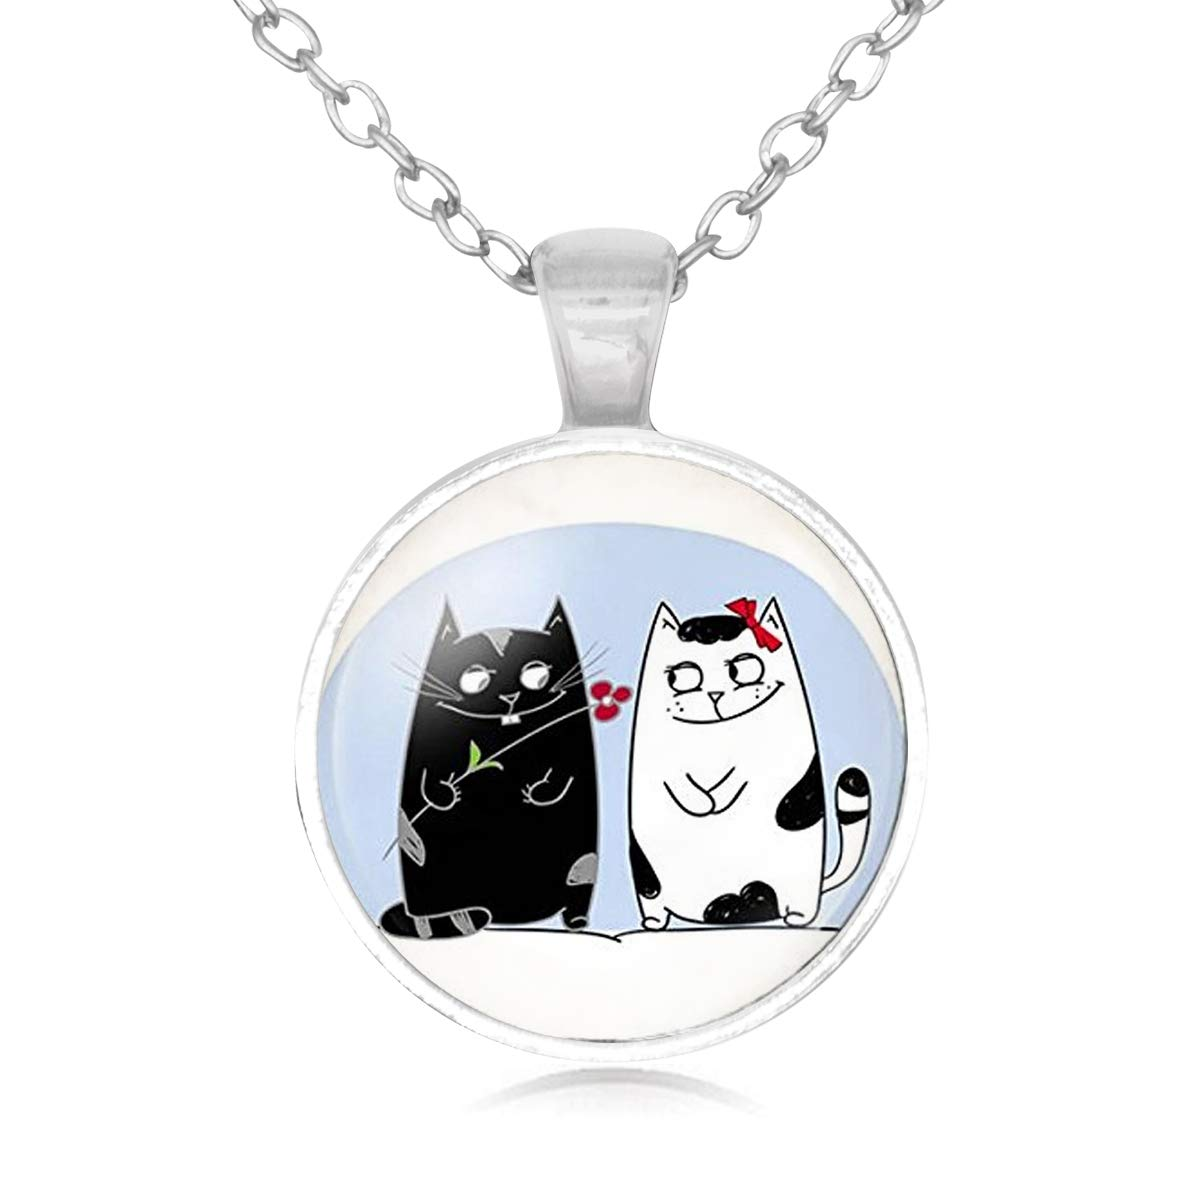 Family Decor Cute Cat Lovers Girl Friend Best Pendant Necklace Cabochon Glass Vintage Bronze Chain Necklace Jewelry Handmade